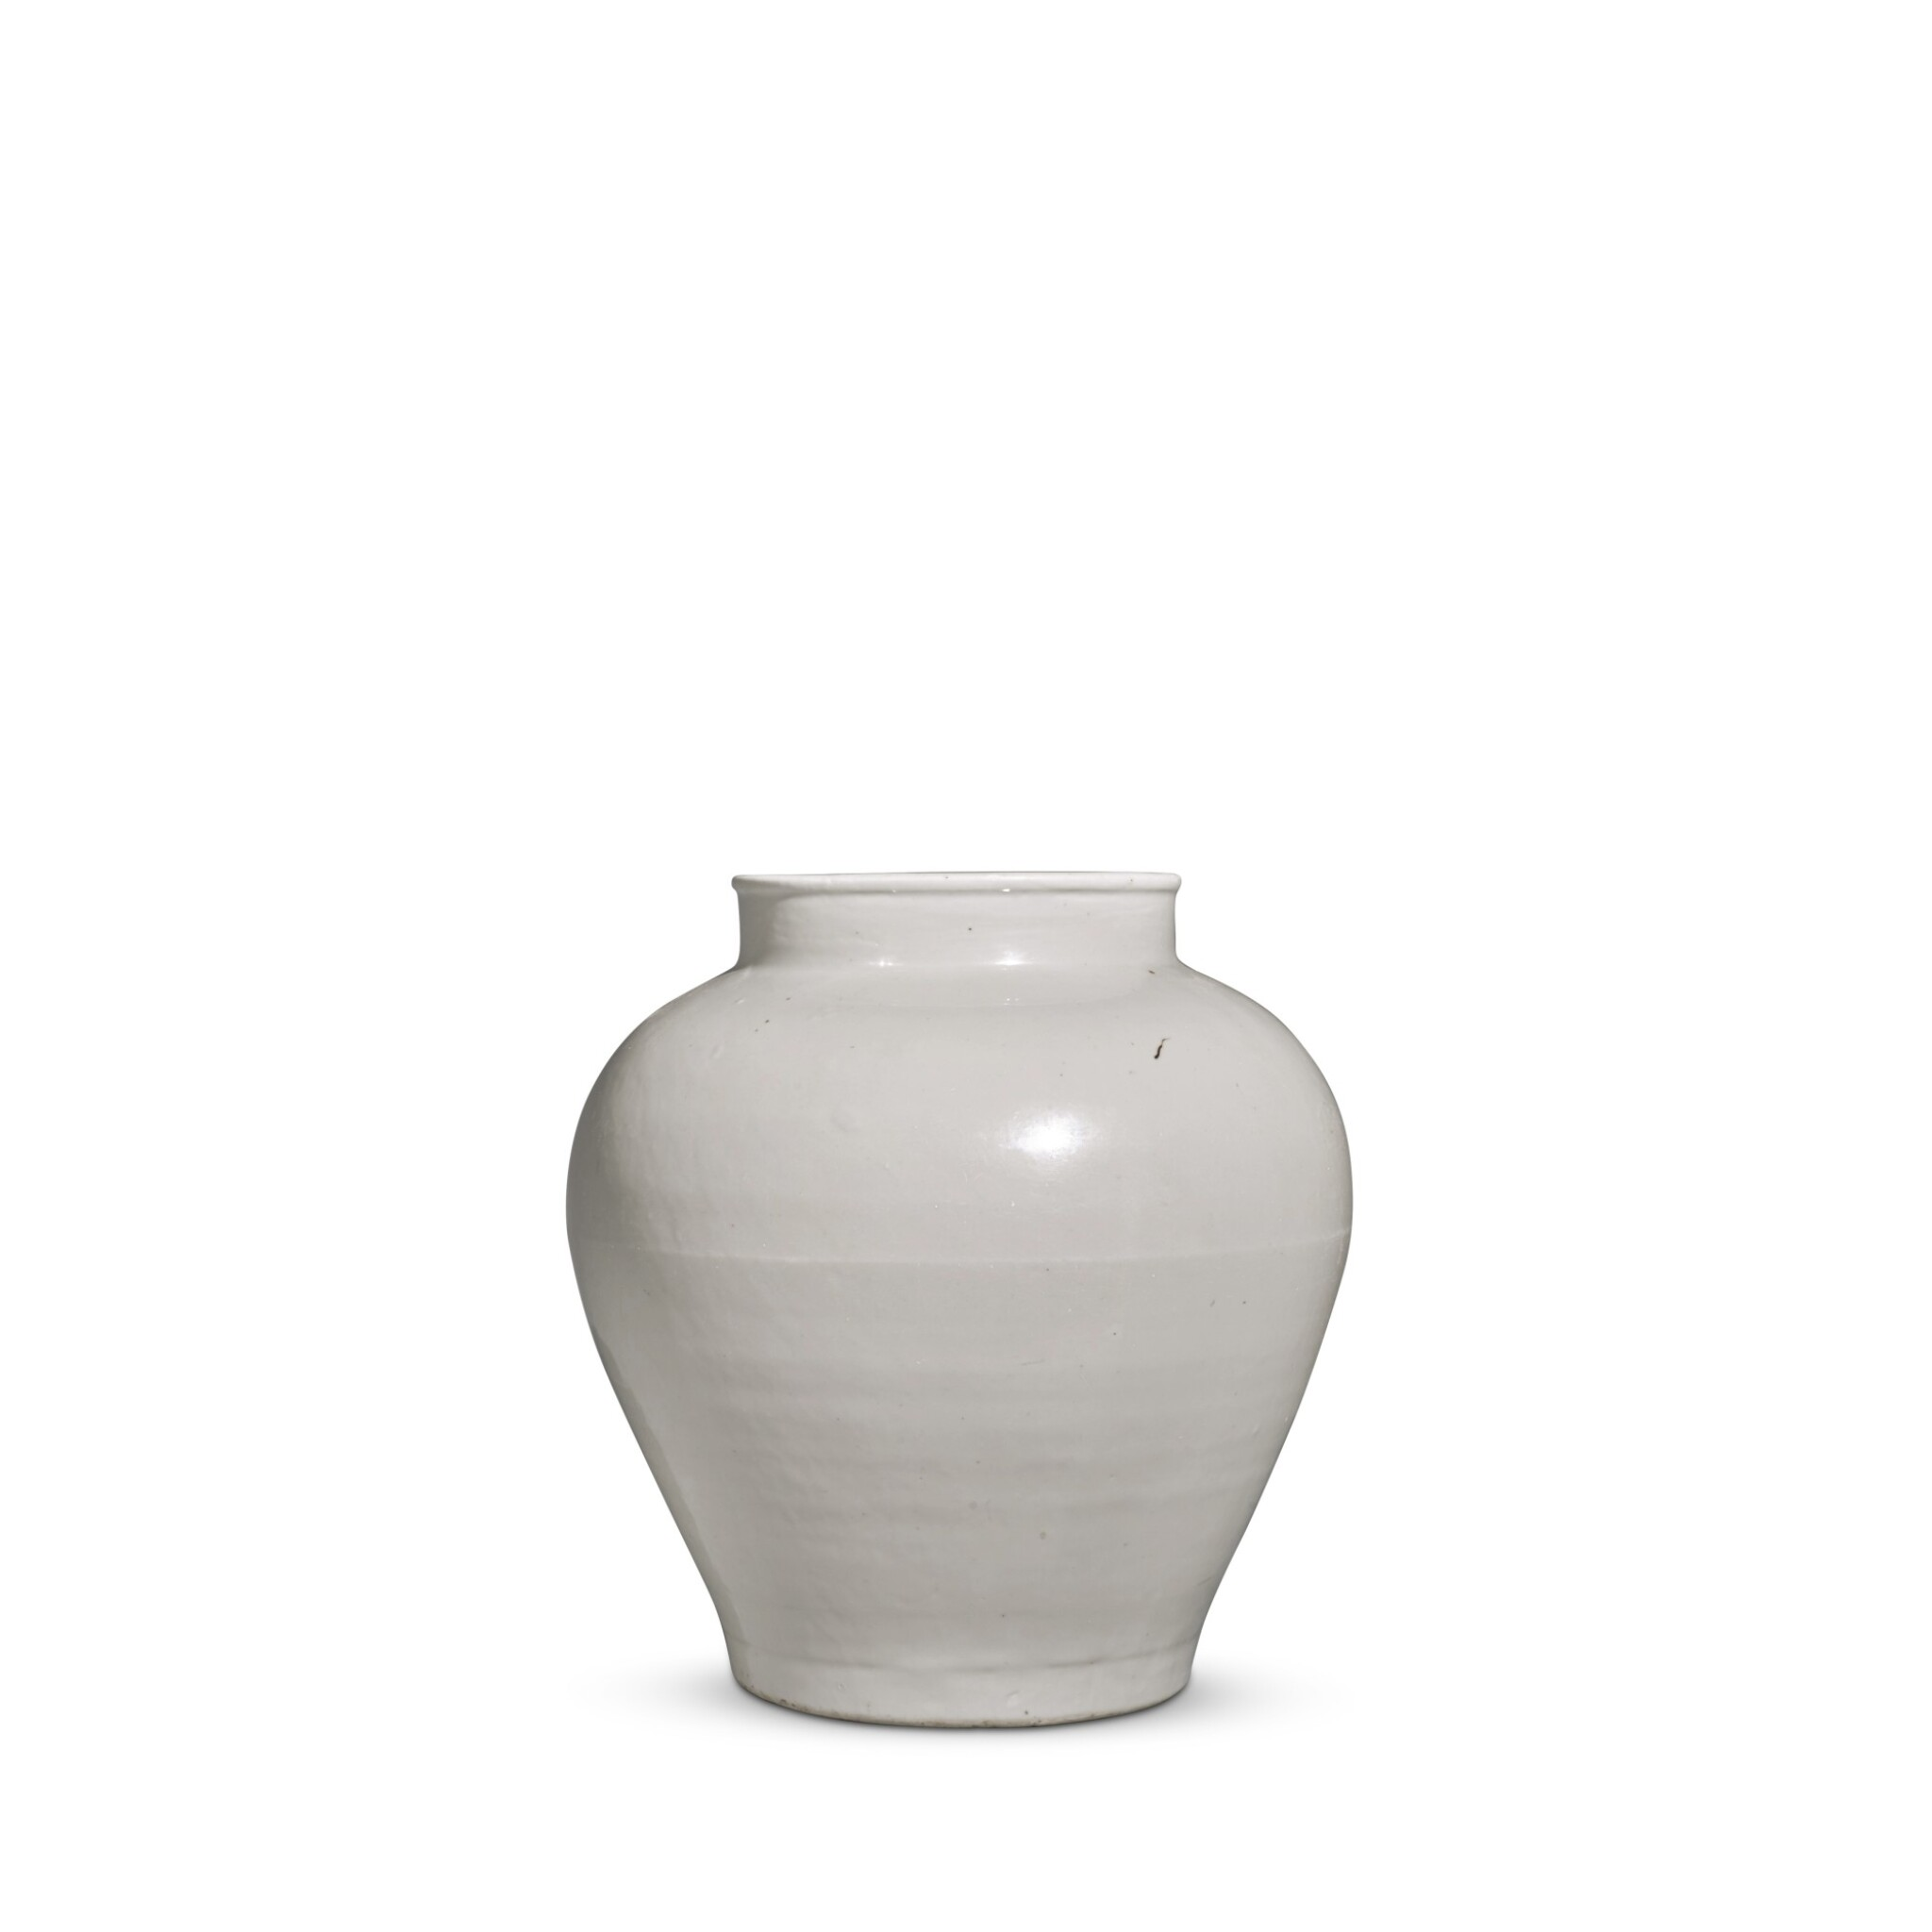 View full screen - View 1 of Lot 92. A white-glazed baluster jar, Ming dynasty, 15th / 16th century | 明十五 / 十六世紀 白釉罐.